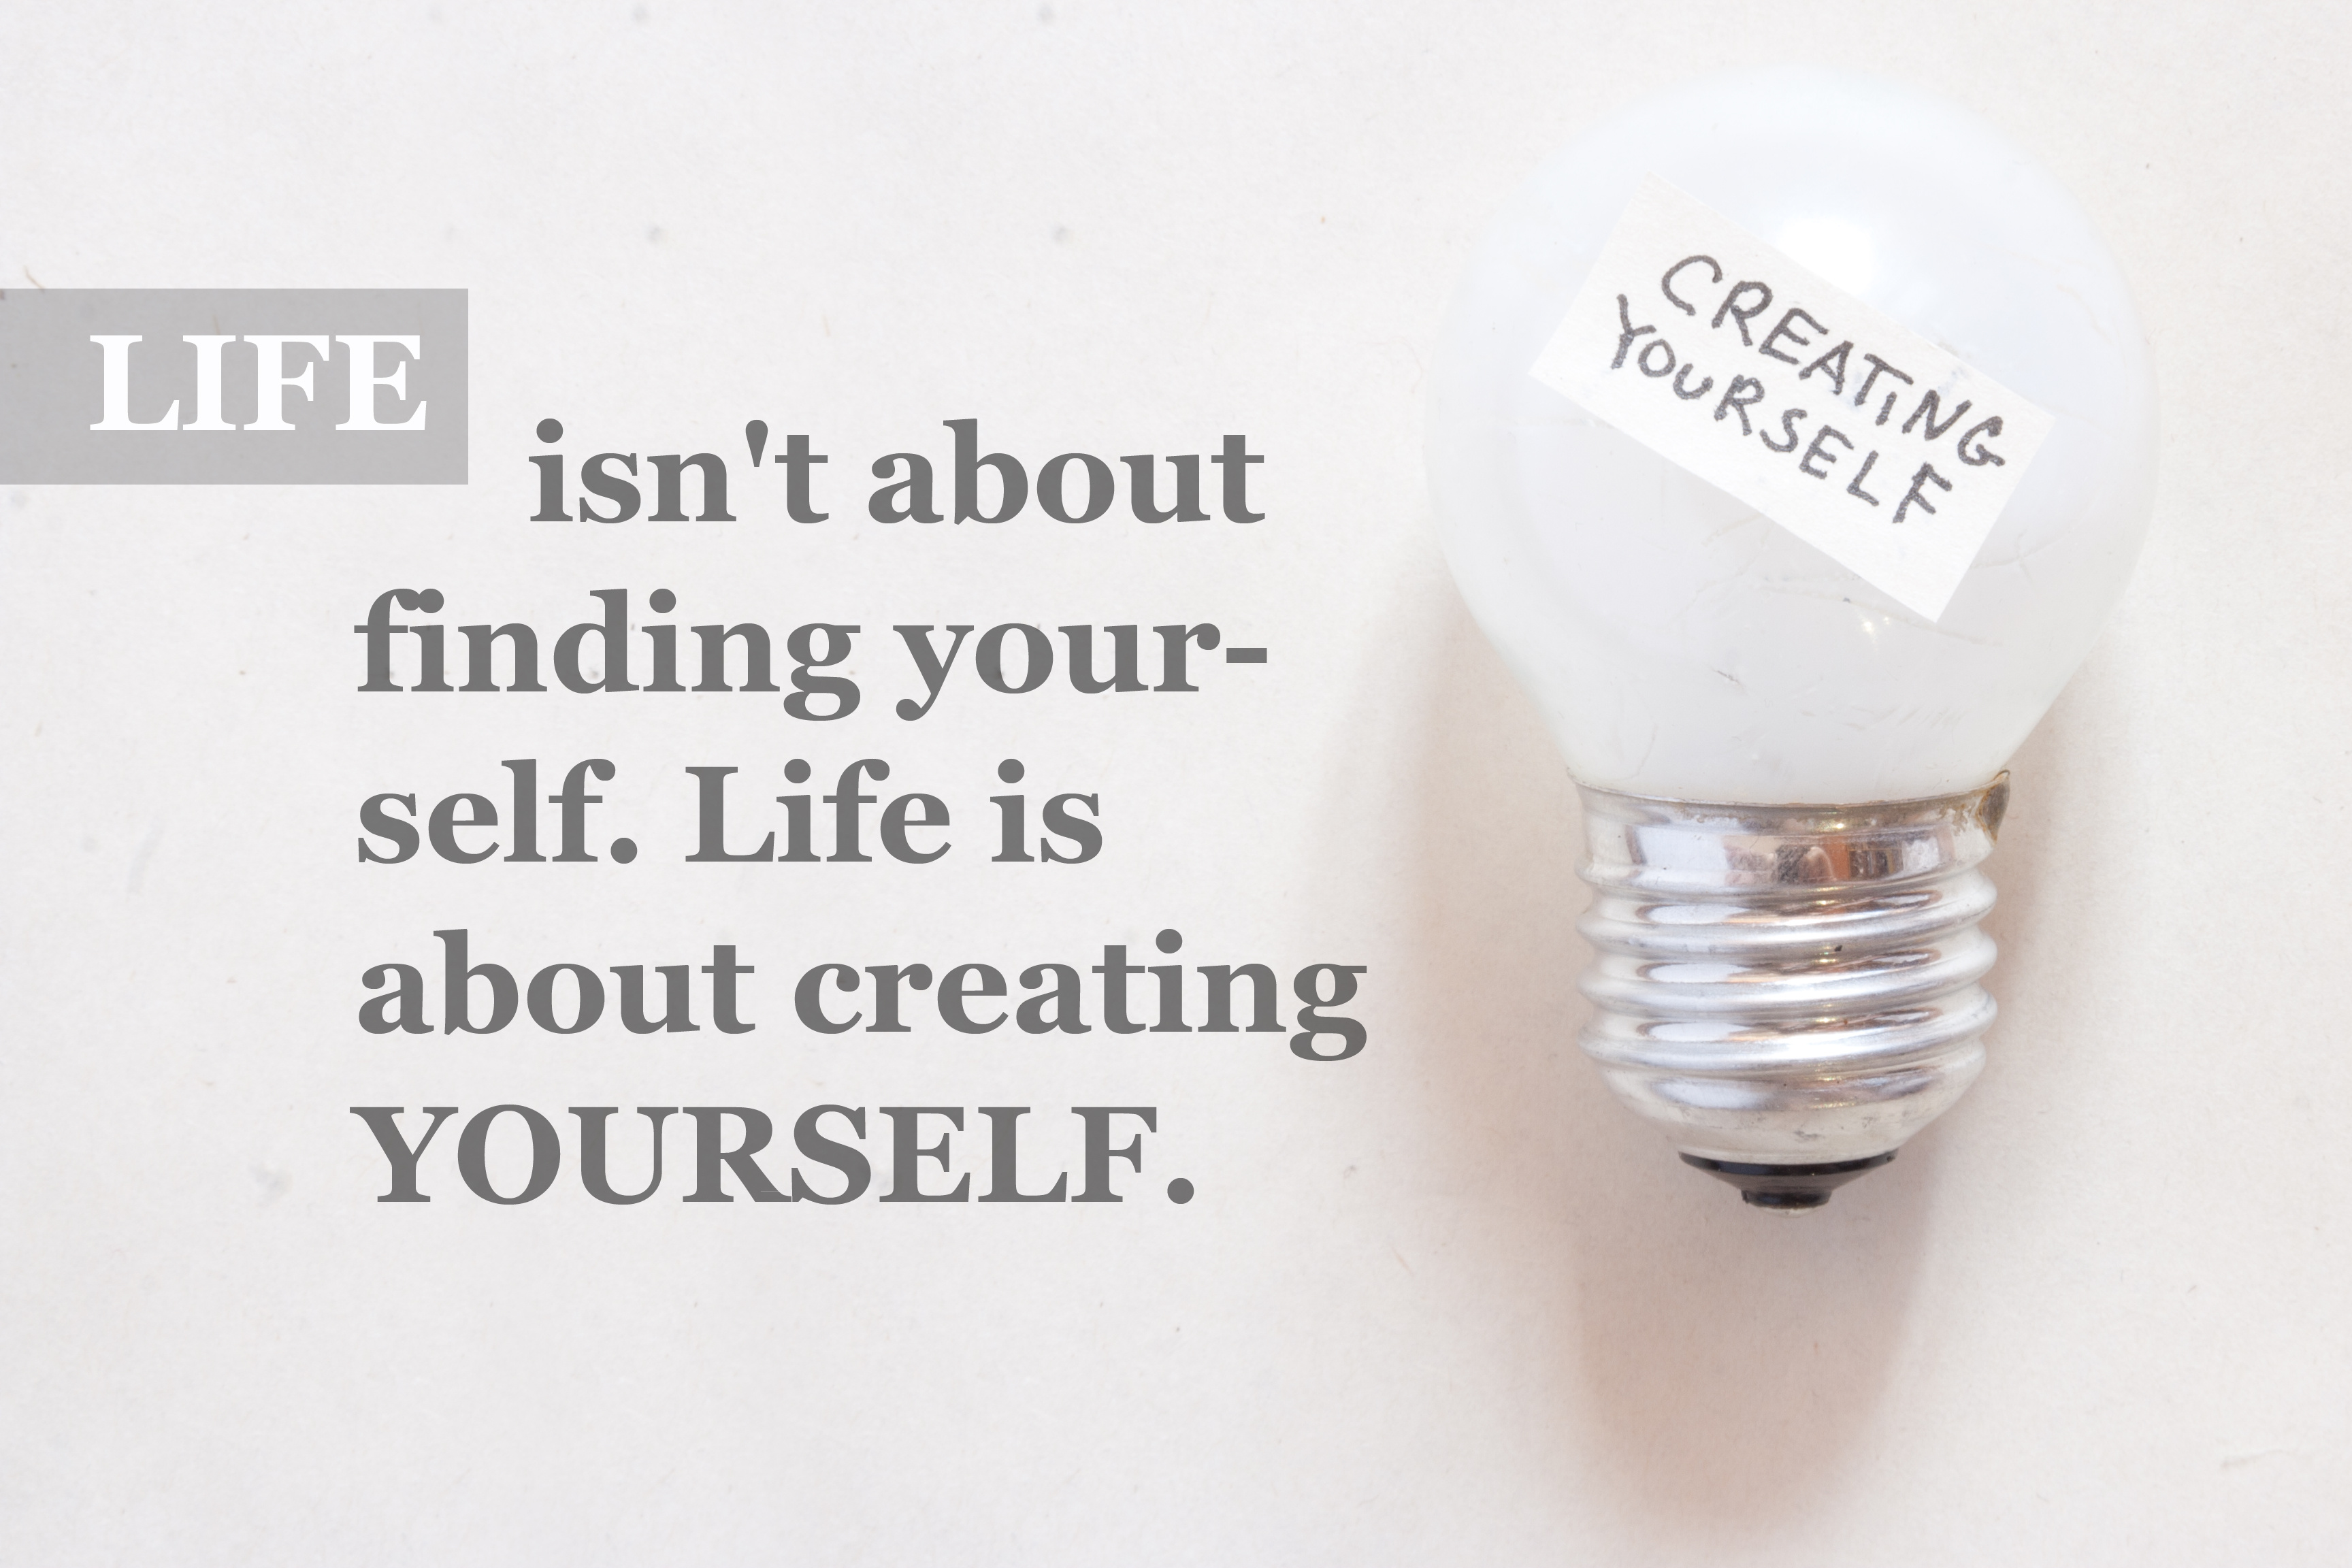 Life isn't about finding yourself. Life is about creating yourse